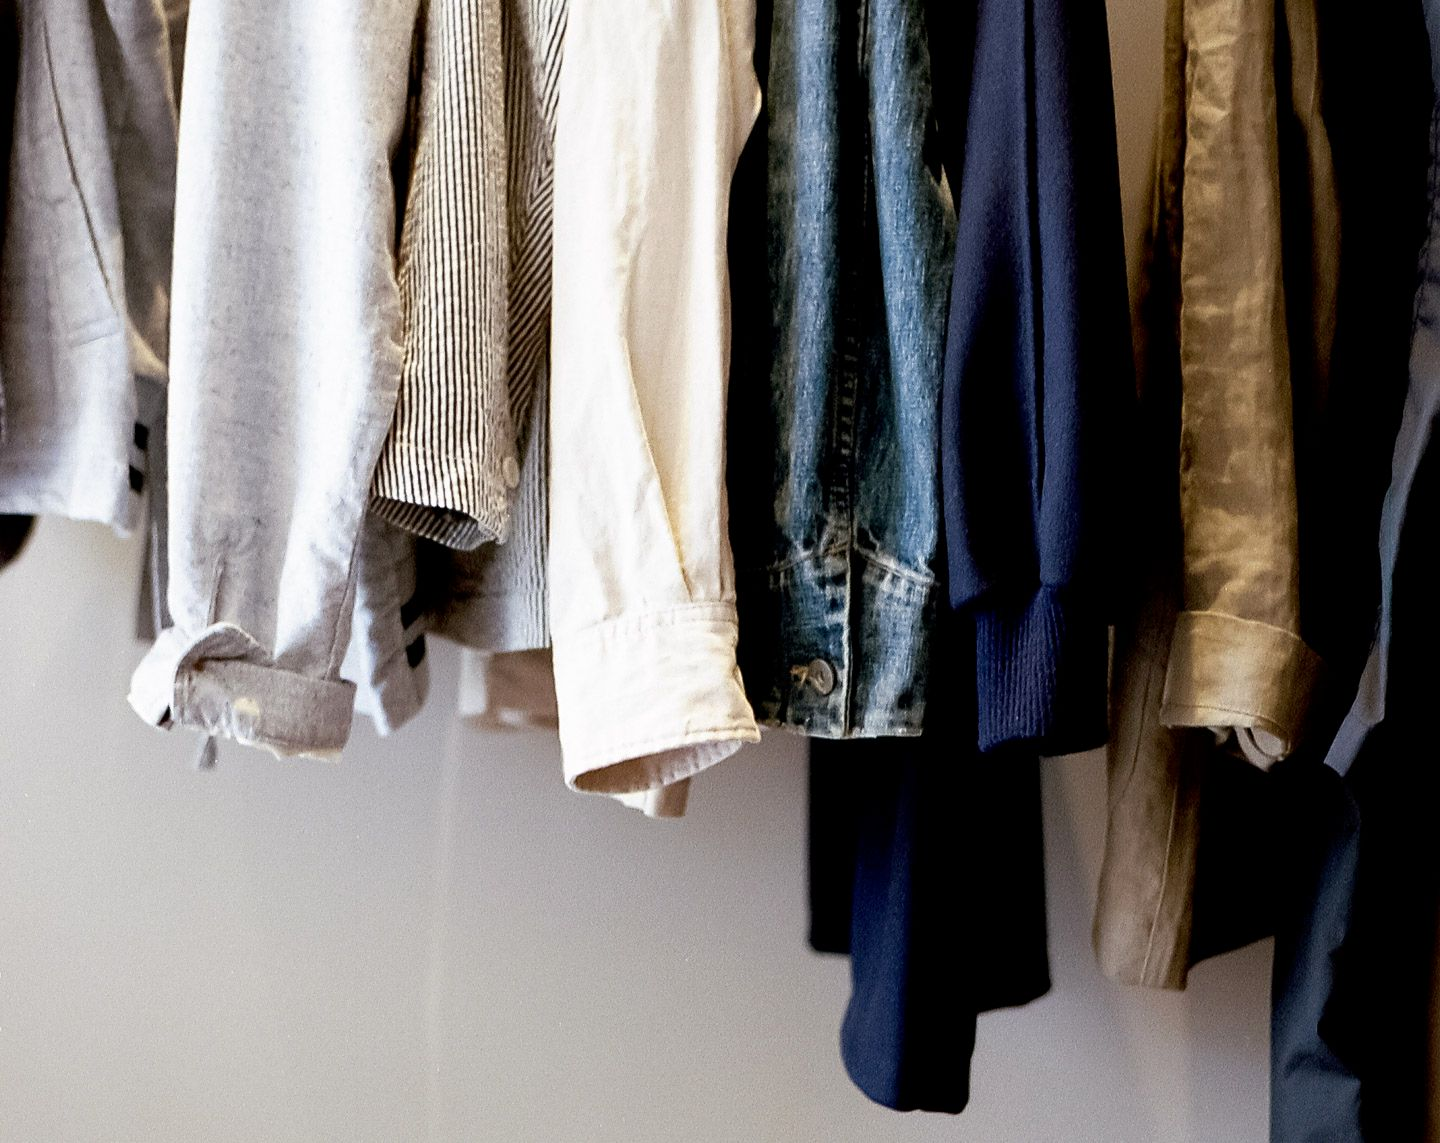 shirts and jackets hanging in closet